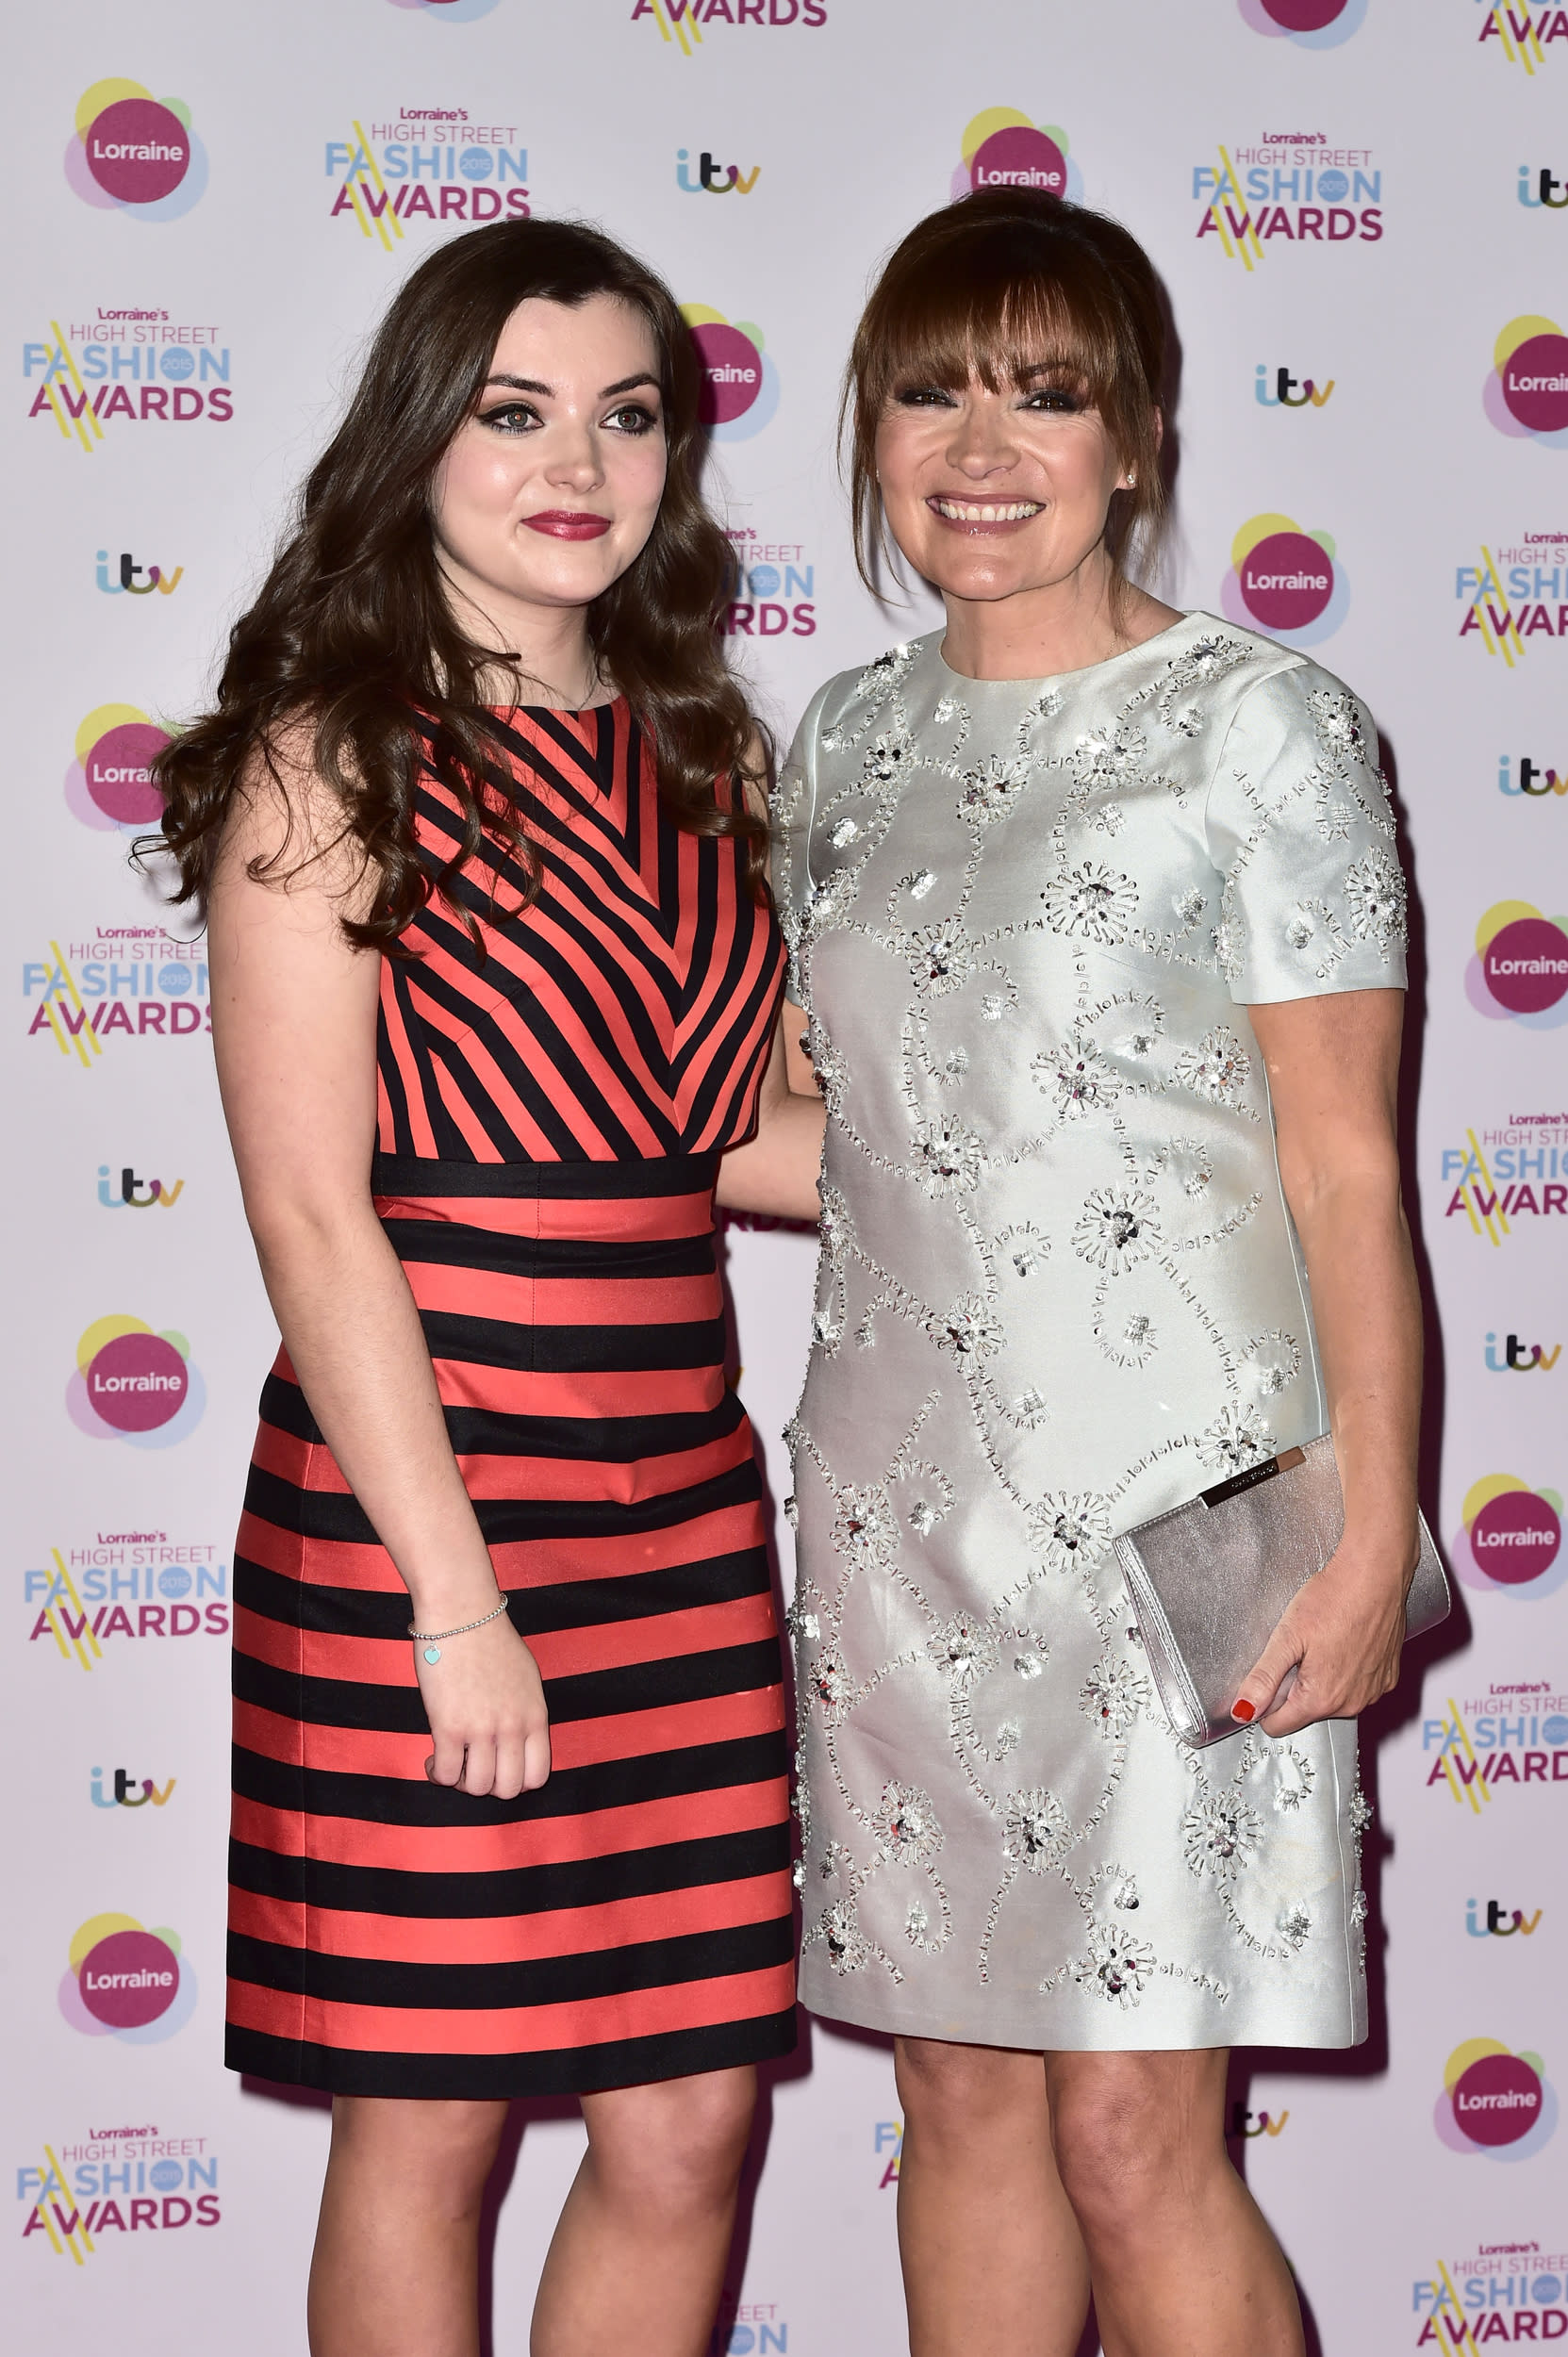 Lorraine Kelly and daughter Rosie attending Lorraine's High Street Fashion Awards, at the Connaught Rooms in London